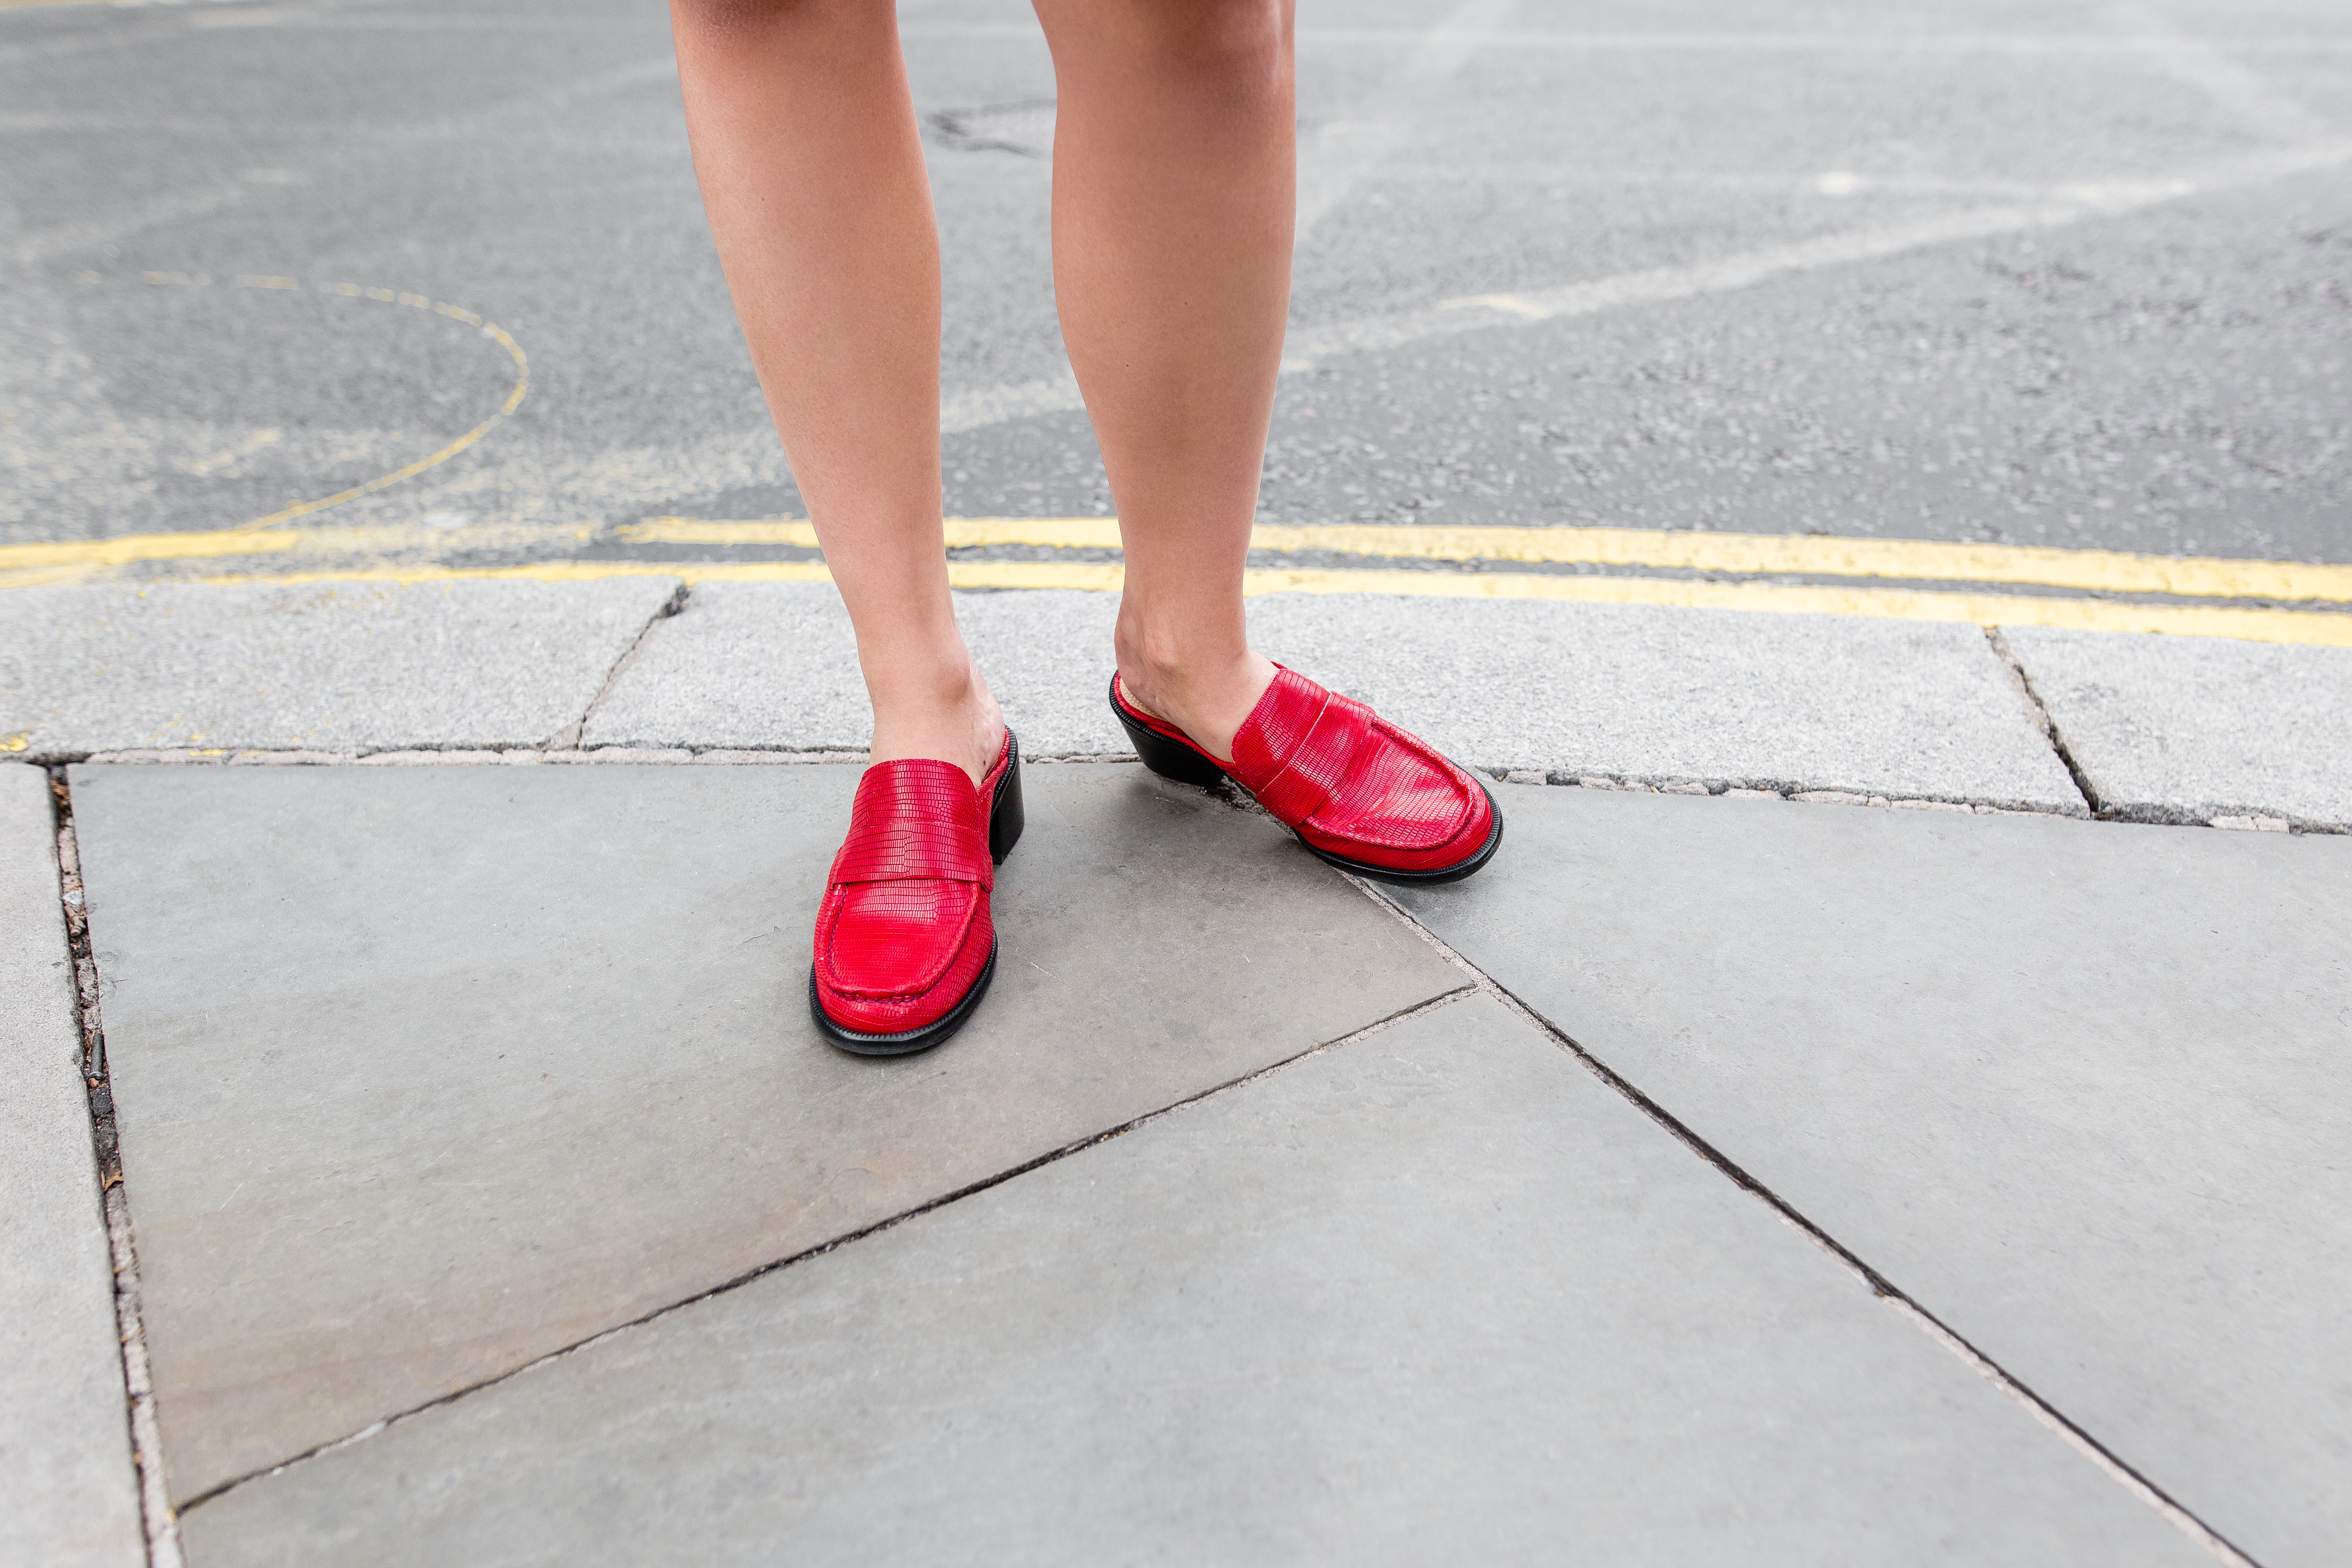 MEGAN ELLABY HOW TO WEAR RED SHOES